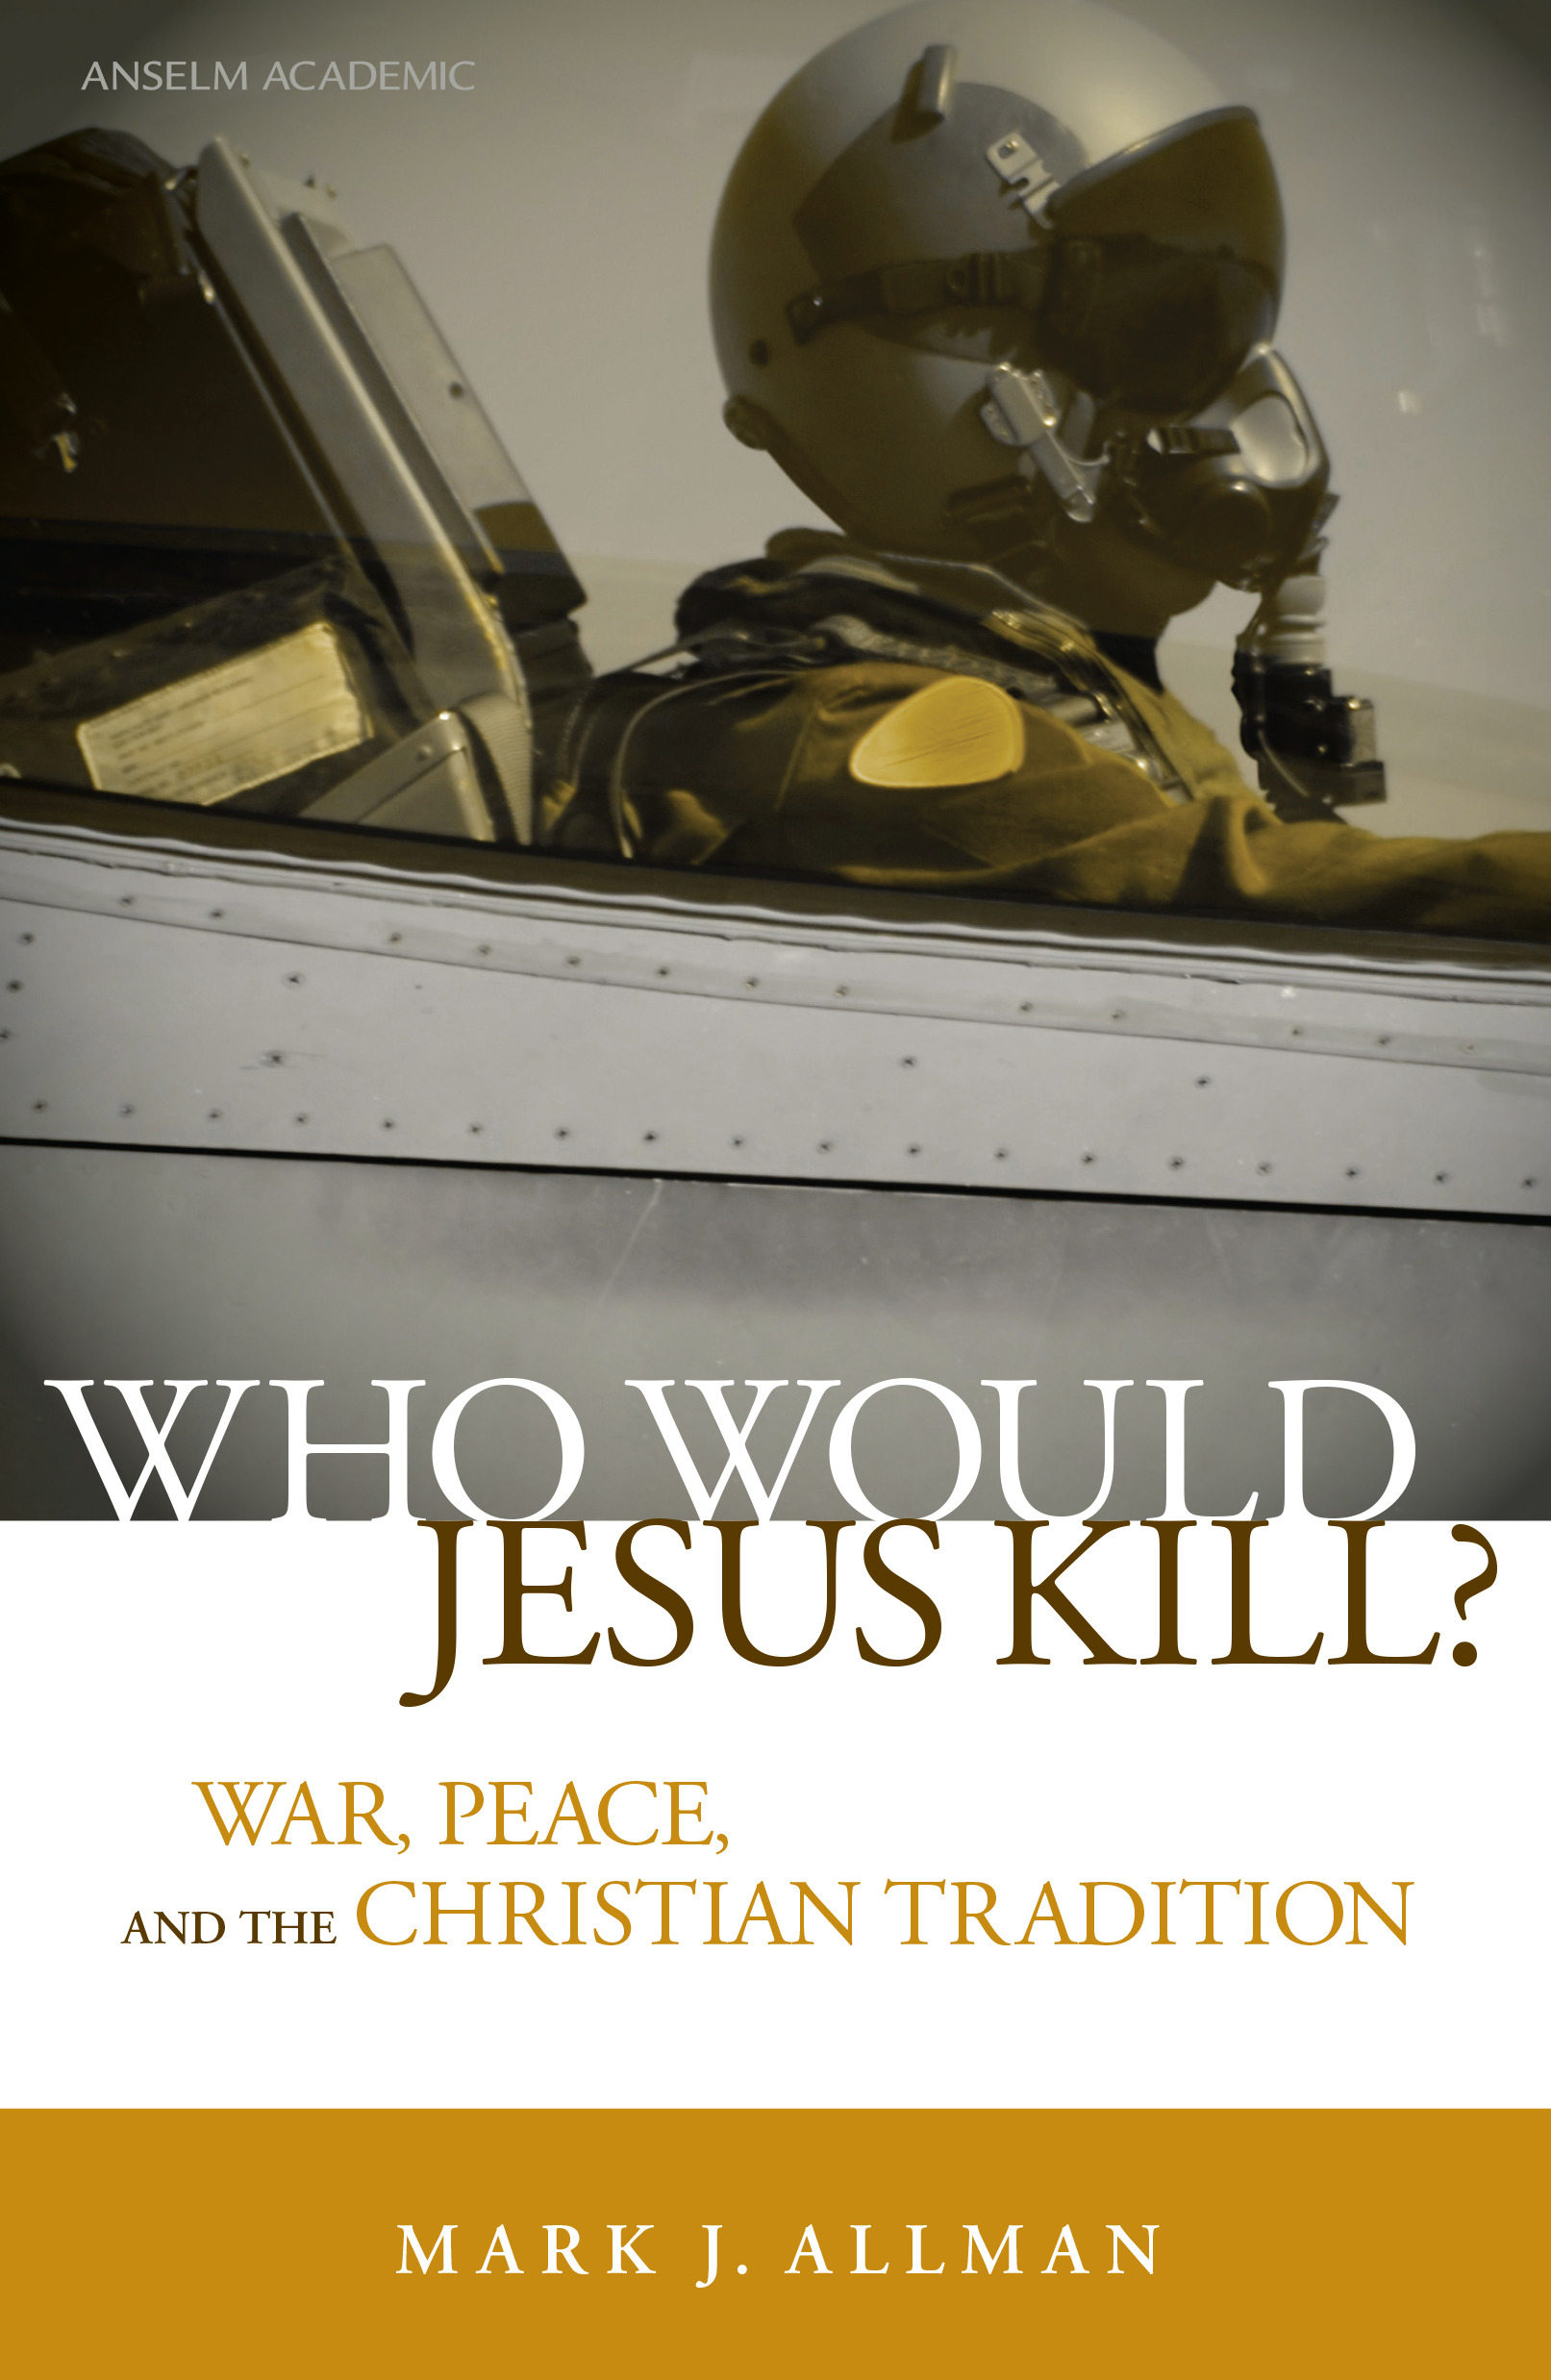 Who Would Jesus Kill?: War, Peace, and the Christian Tradition